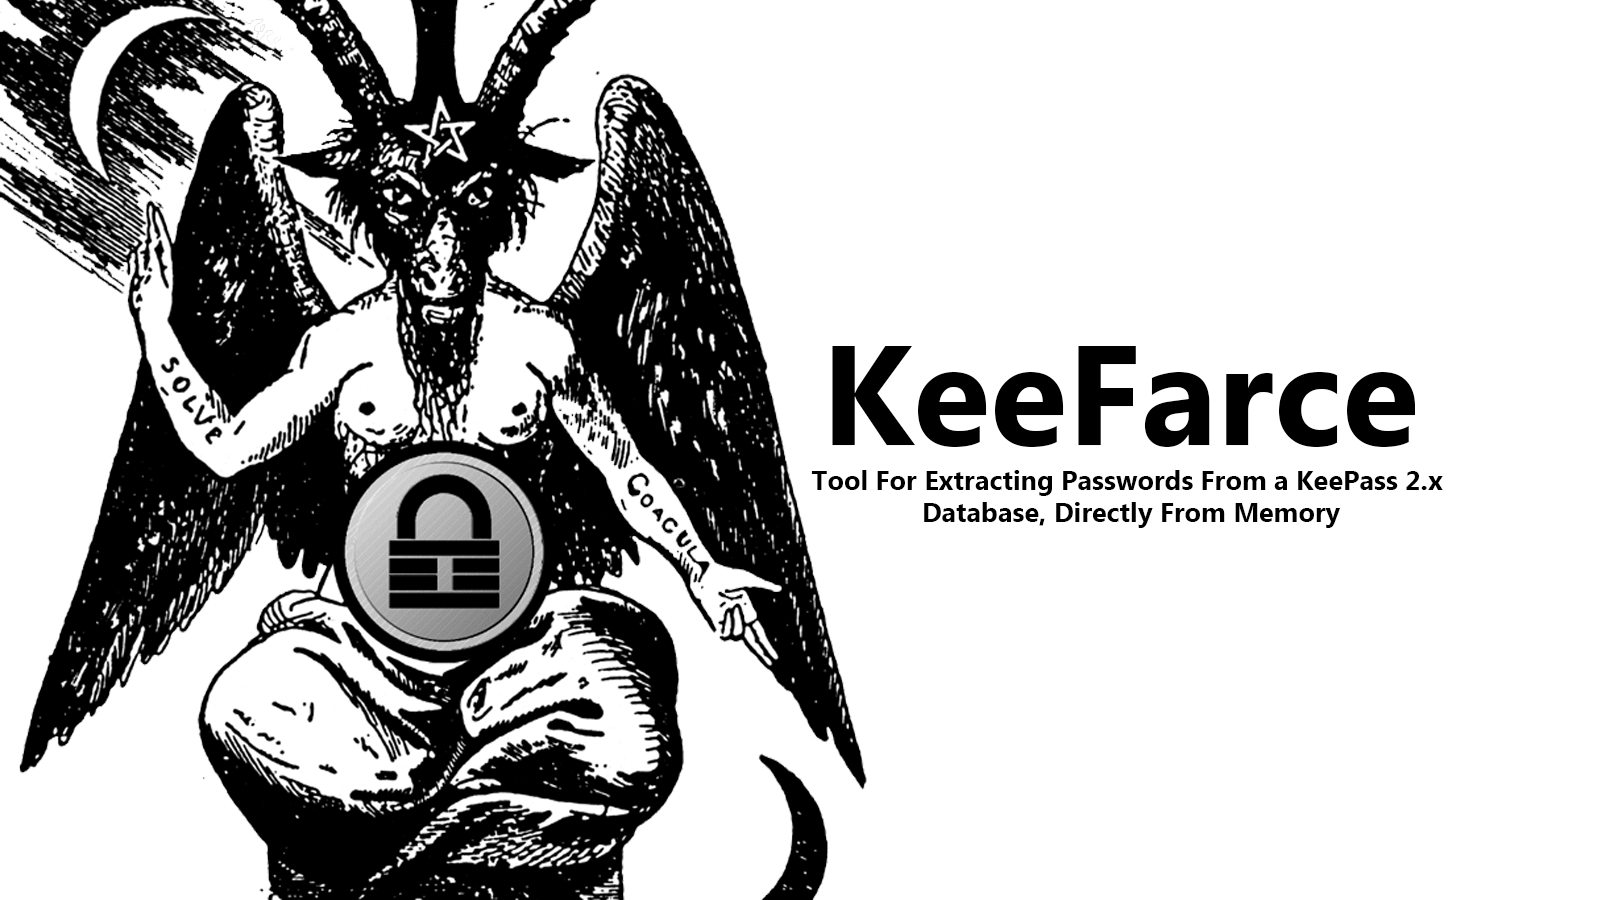 KeeFarce - Tool For Extracting Passwords From a KeePass 2.x Database, Directly From Memory